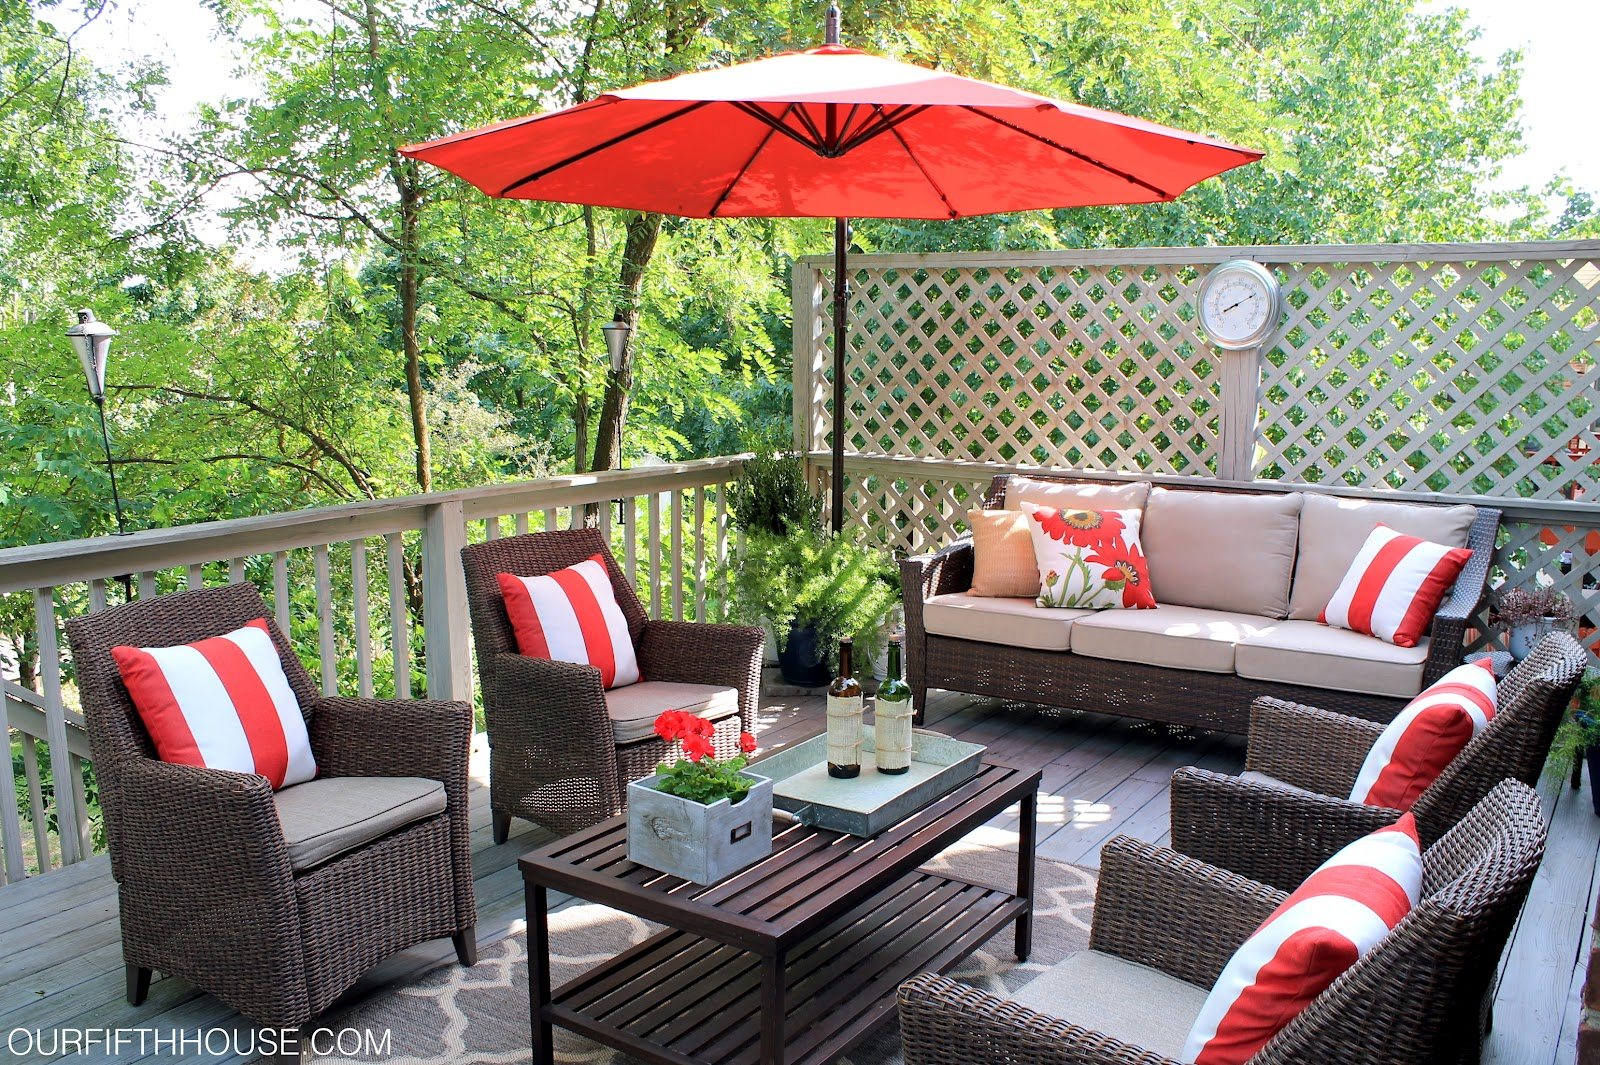 Outdoor living deck updates our fifth house for Outdoor deck furniture ideas